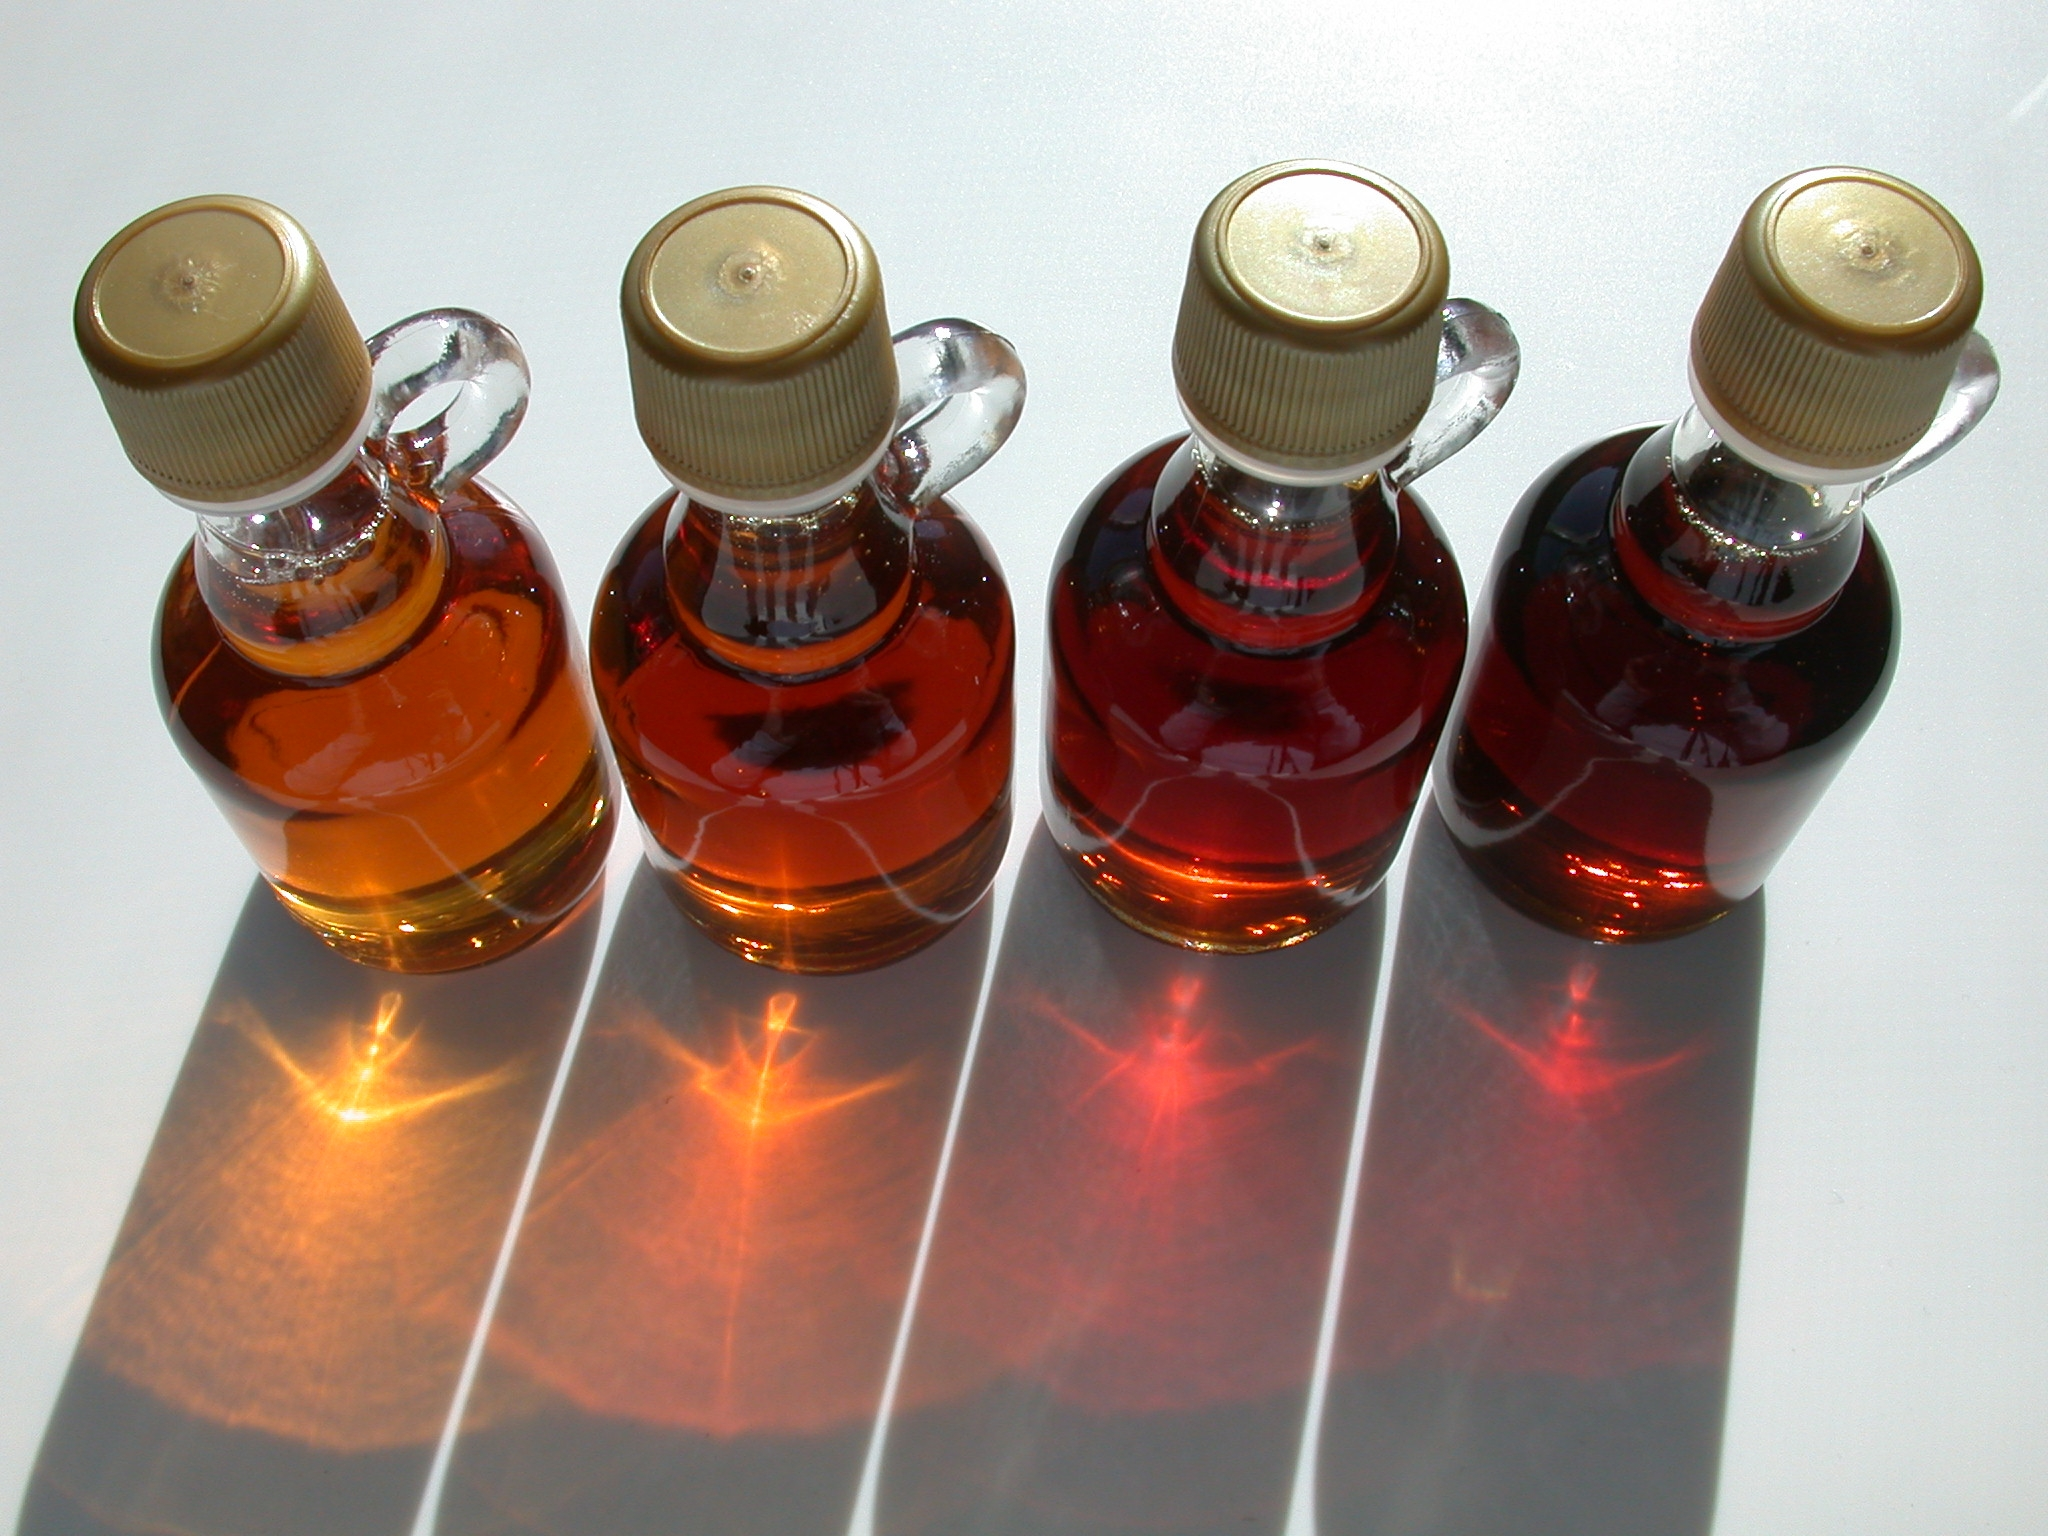 different grades of maple syrup. photo by Dvortygirl Wikimedia Commons